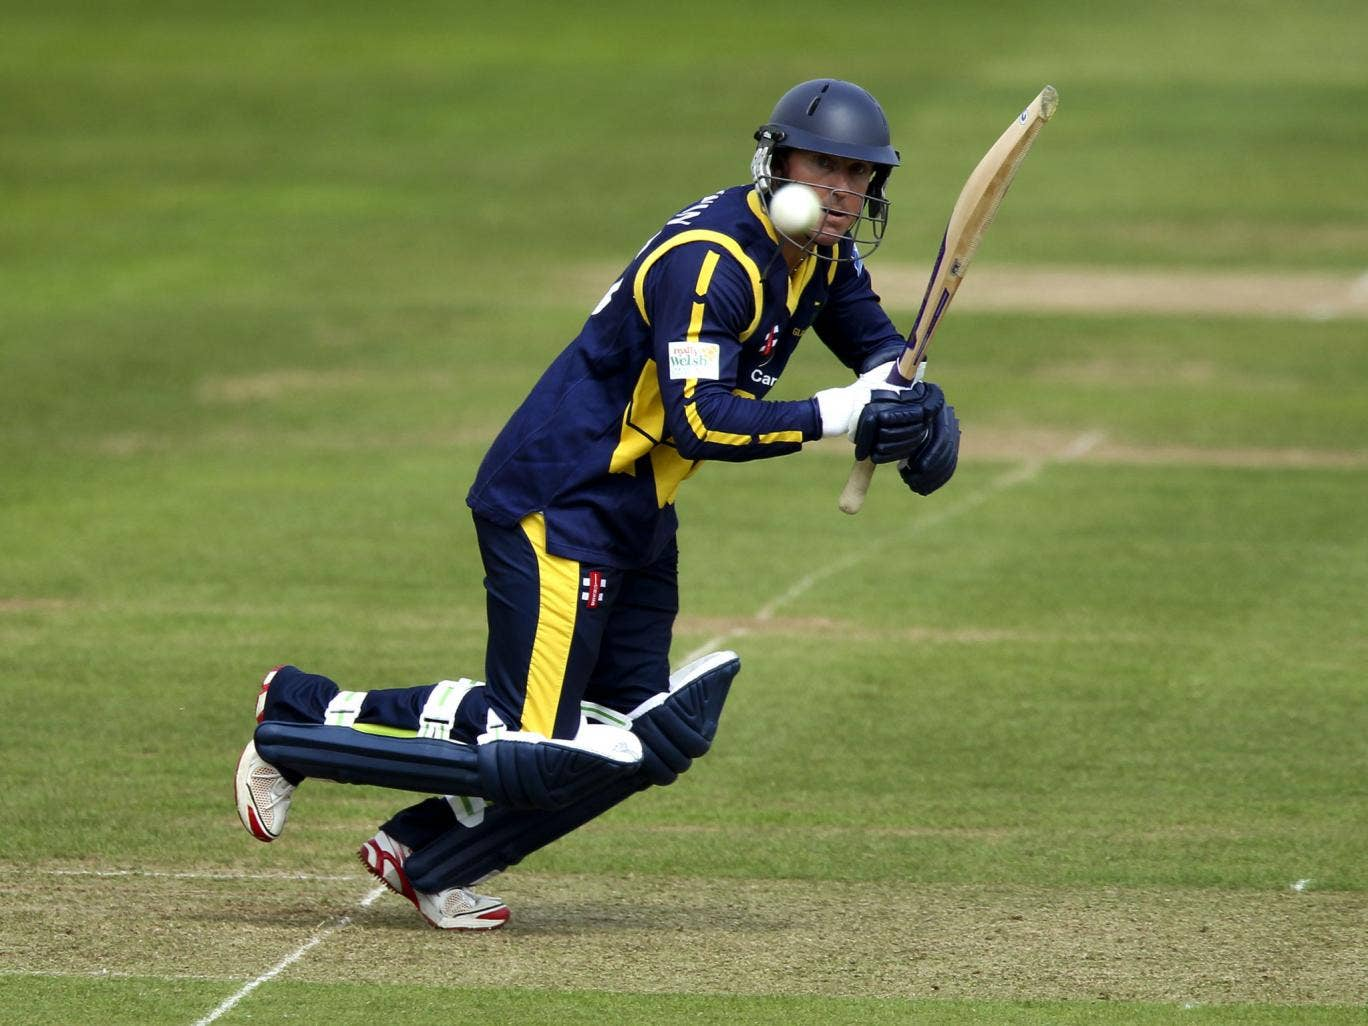 Goodwin completed 1,000 first-class runs in a season for the 10th time